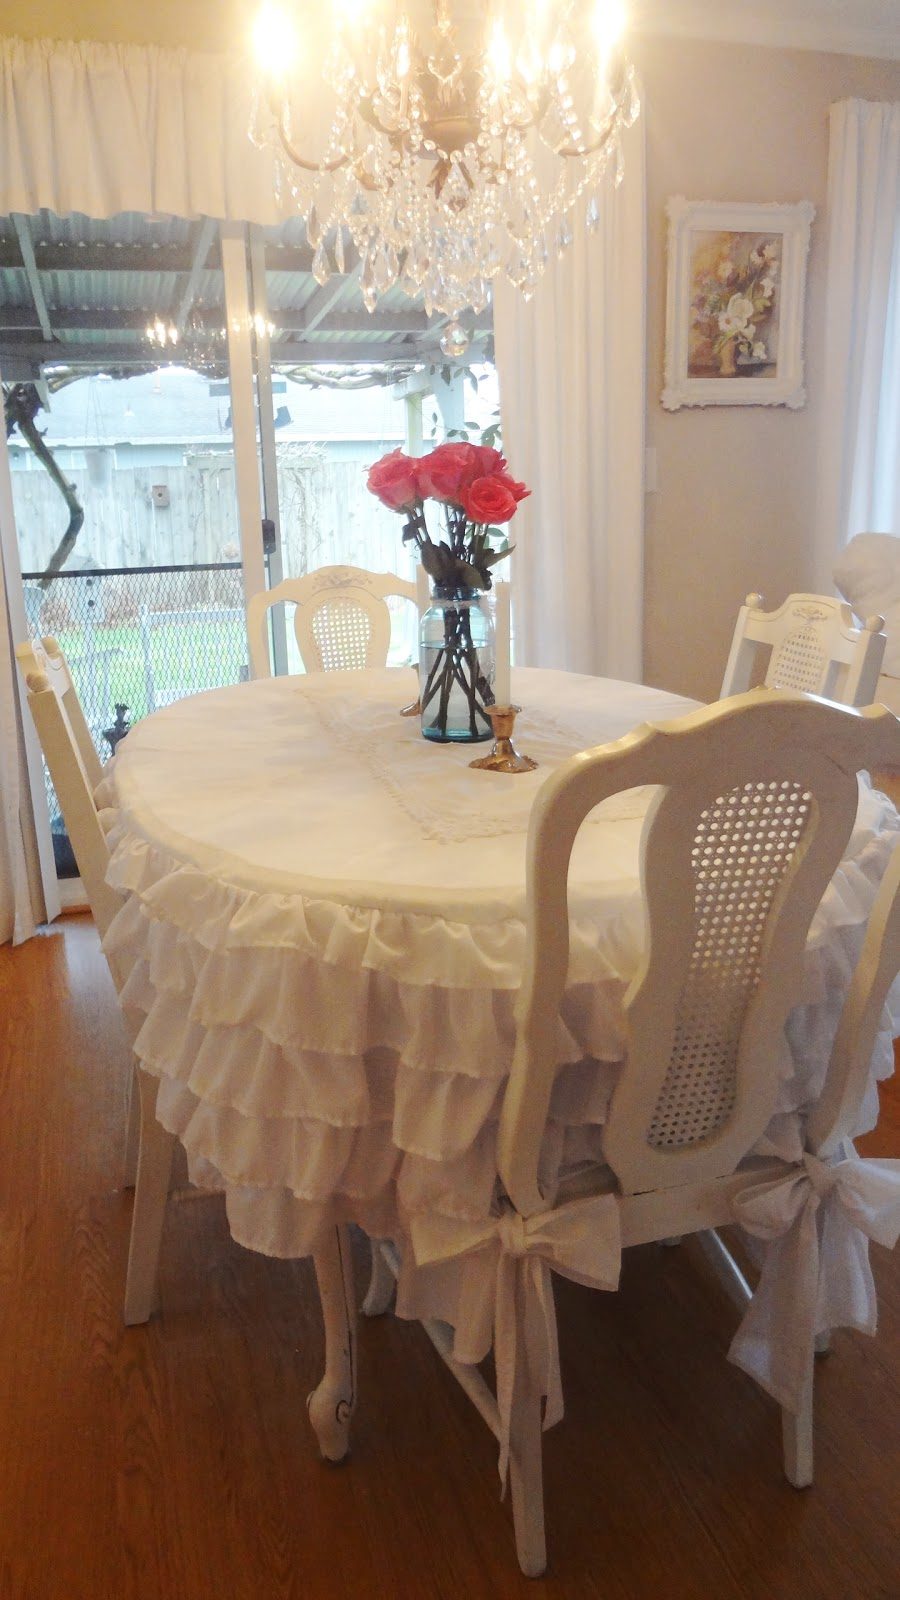 Making A Ruffled Bedskirt Tablecloth